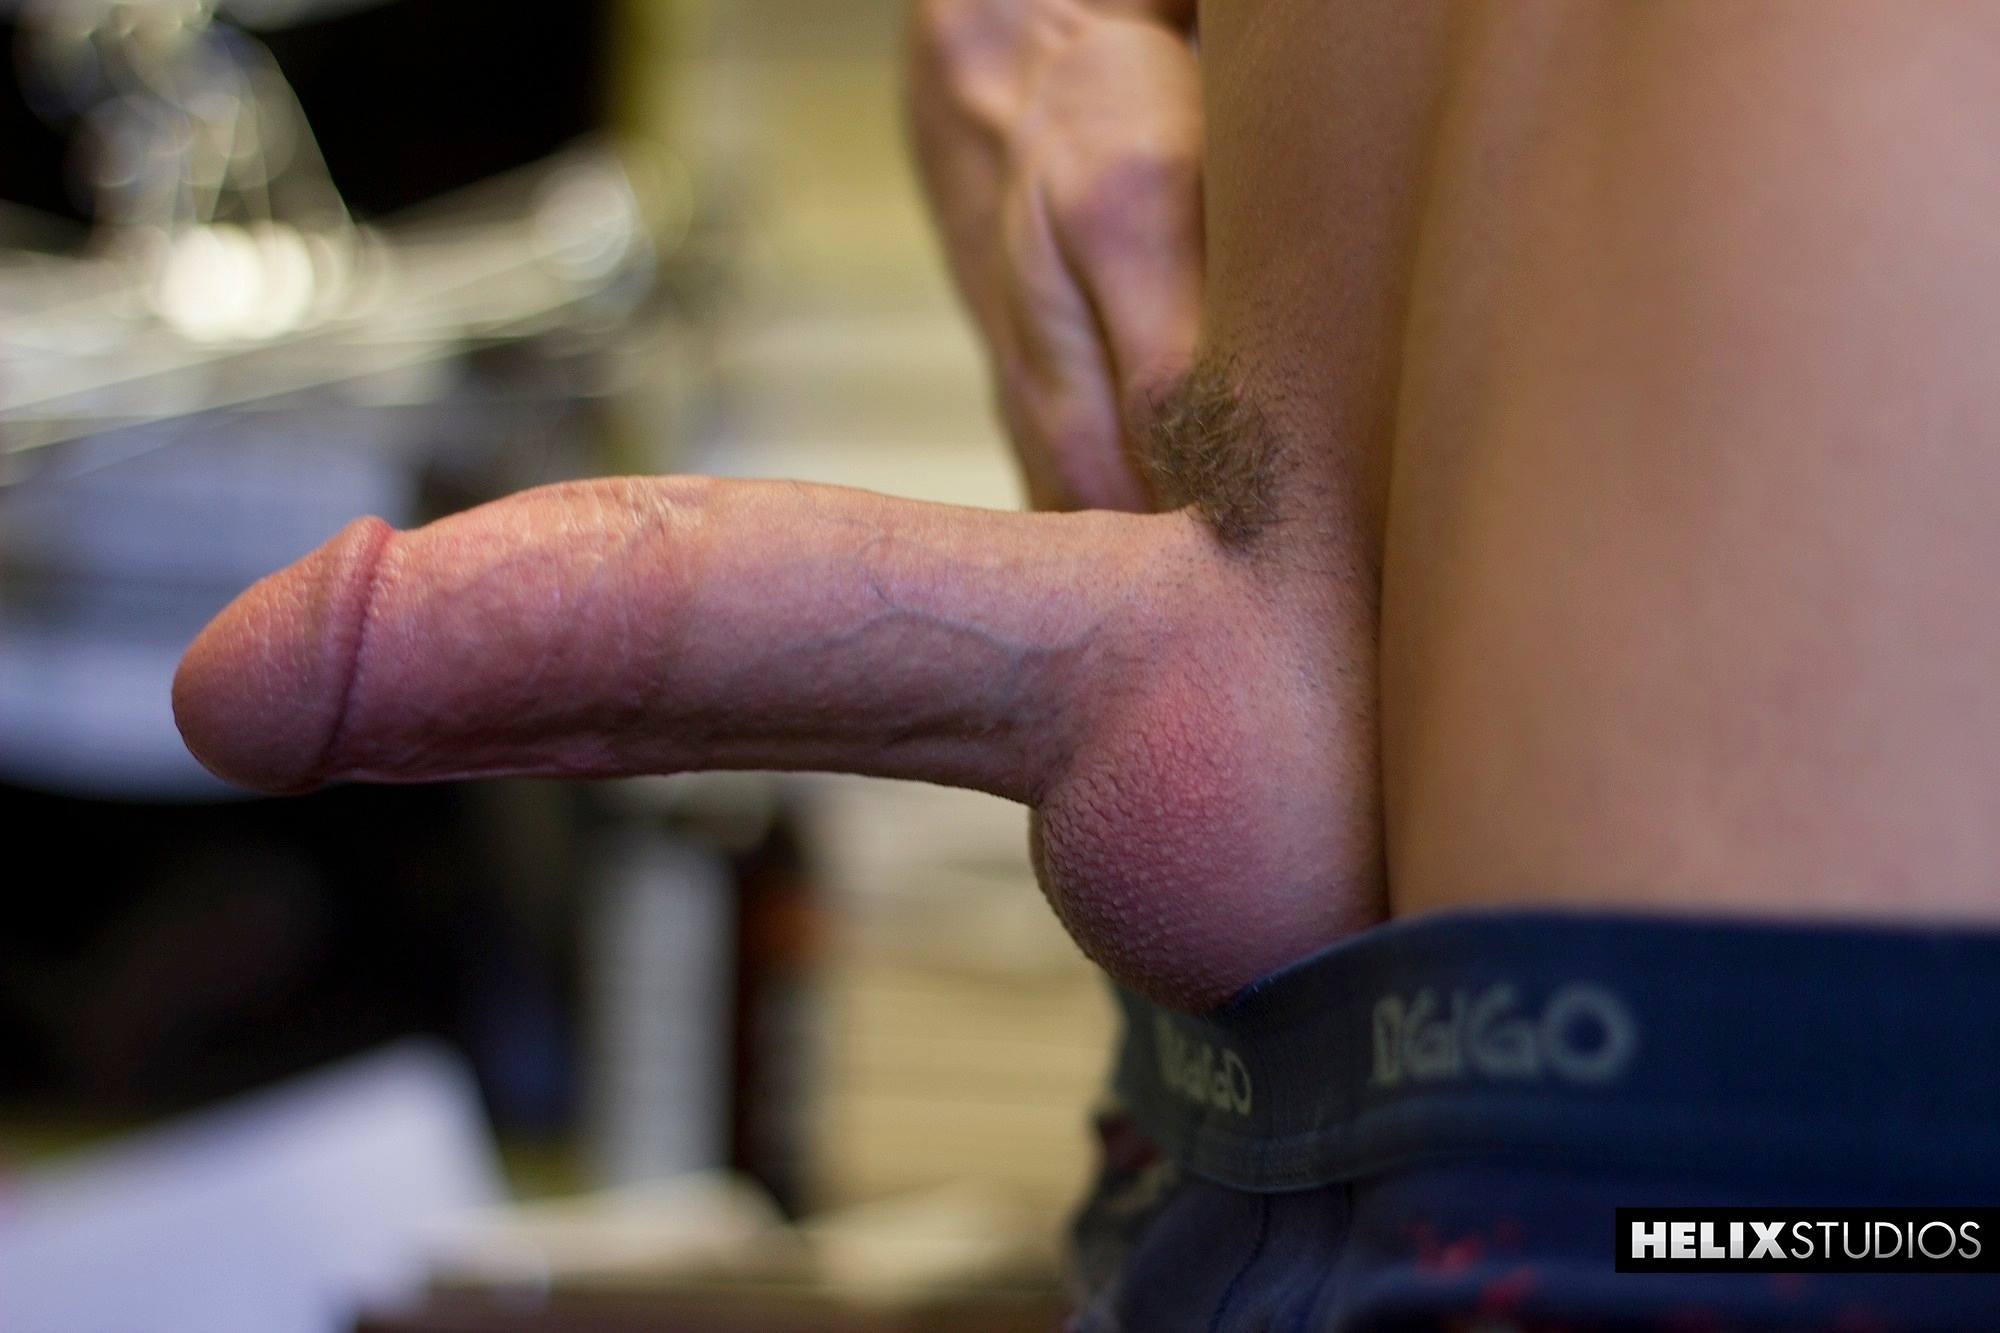 Helix Studios Christian Collins Twink Redhead bigcock 06 Red Headed Amateur Twink With Huge Cock Rubs One Out